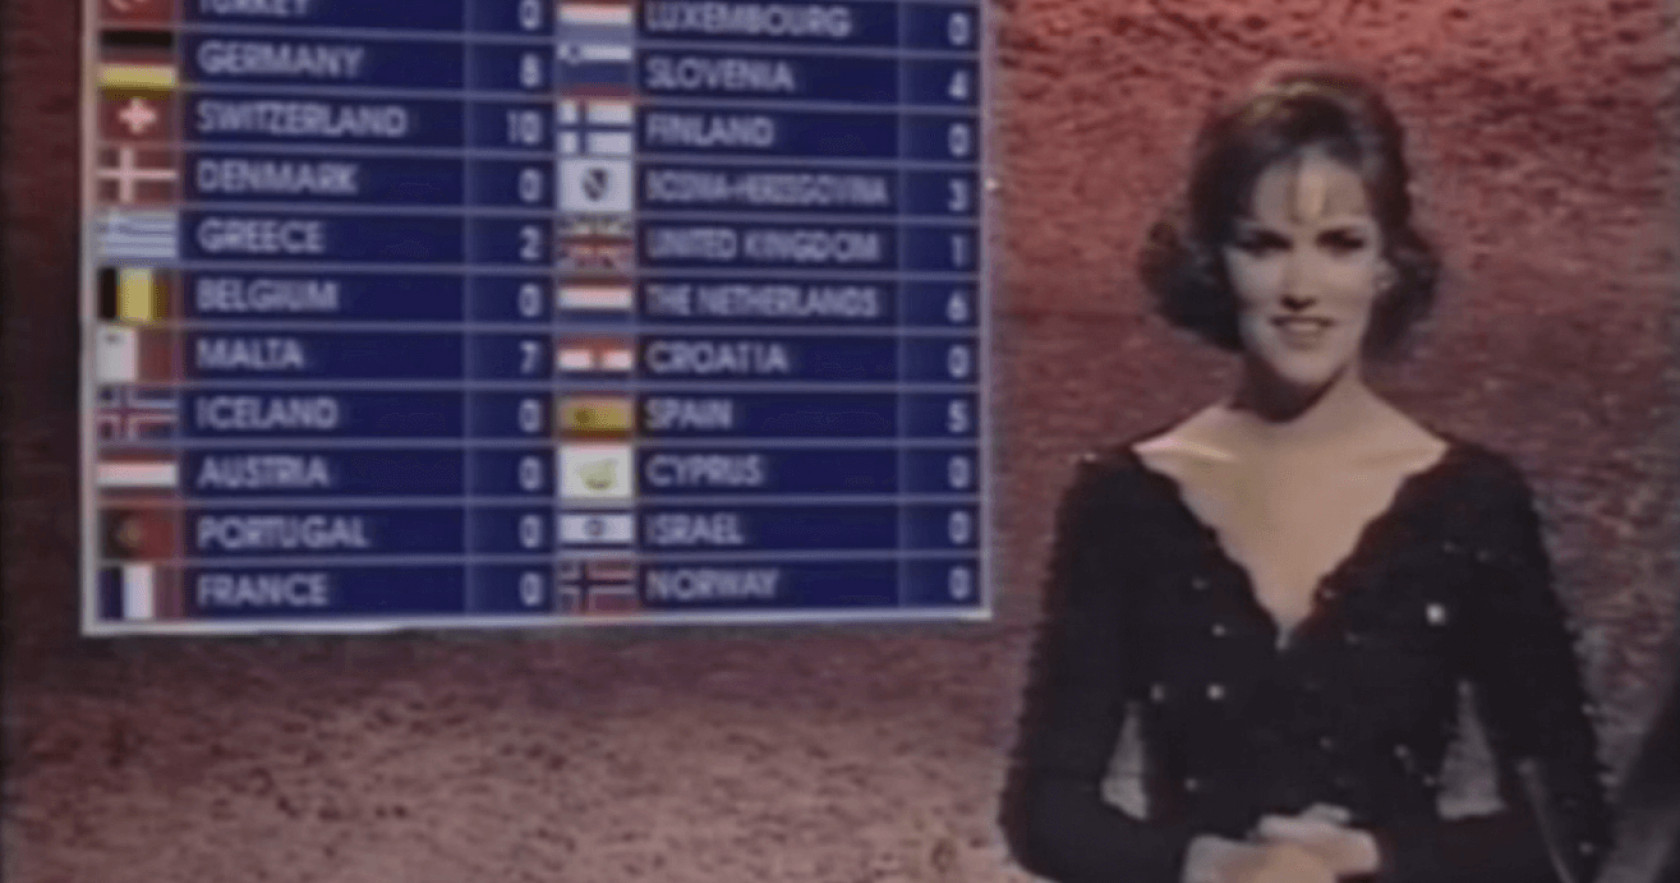 Fionnuala Sweeney presenting the 1993 Eurovision Song Contest